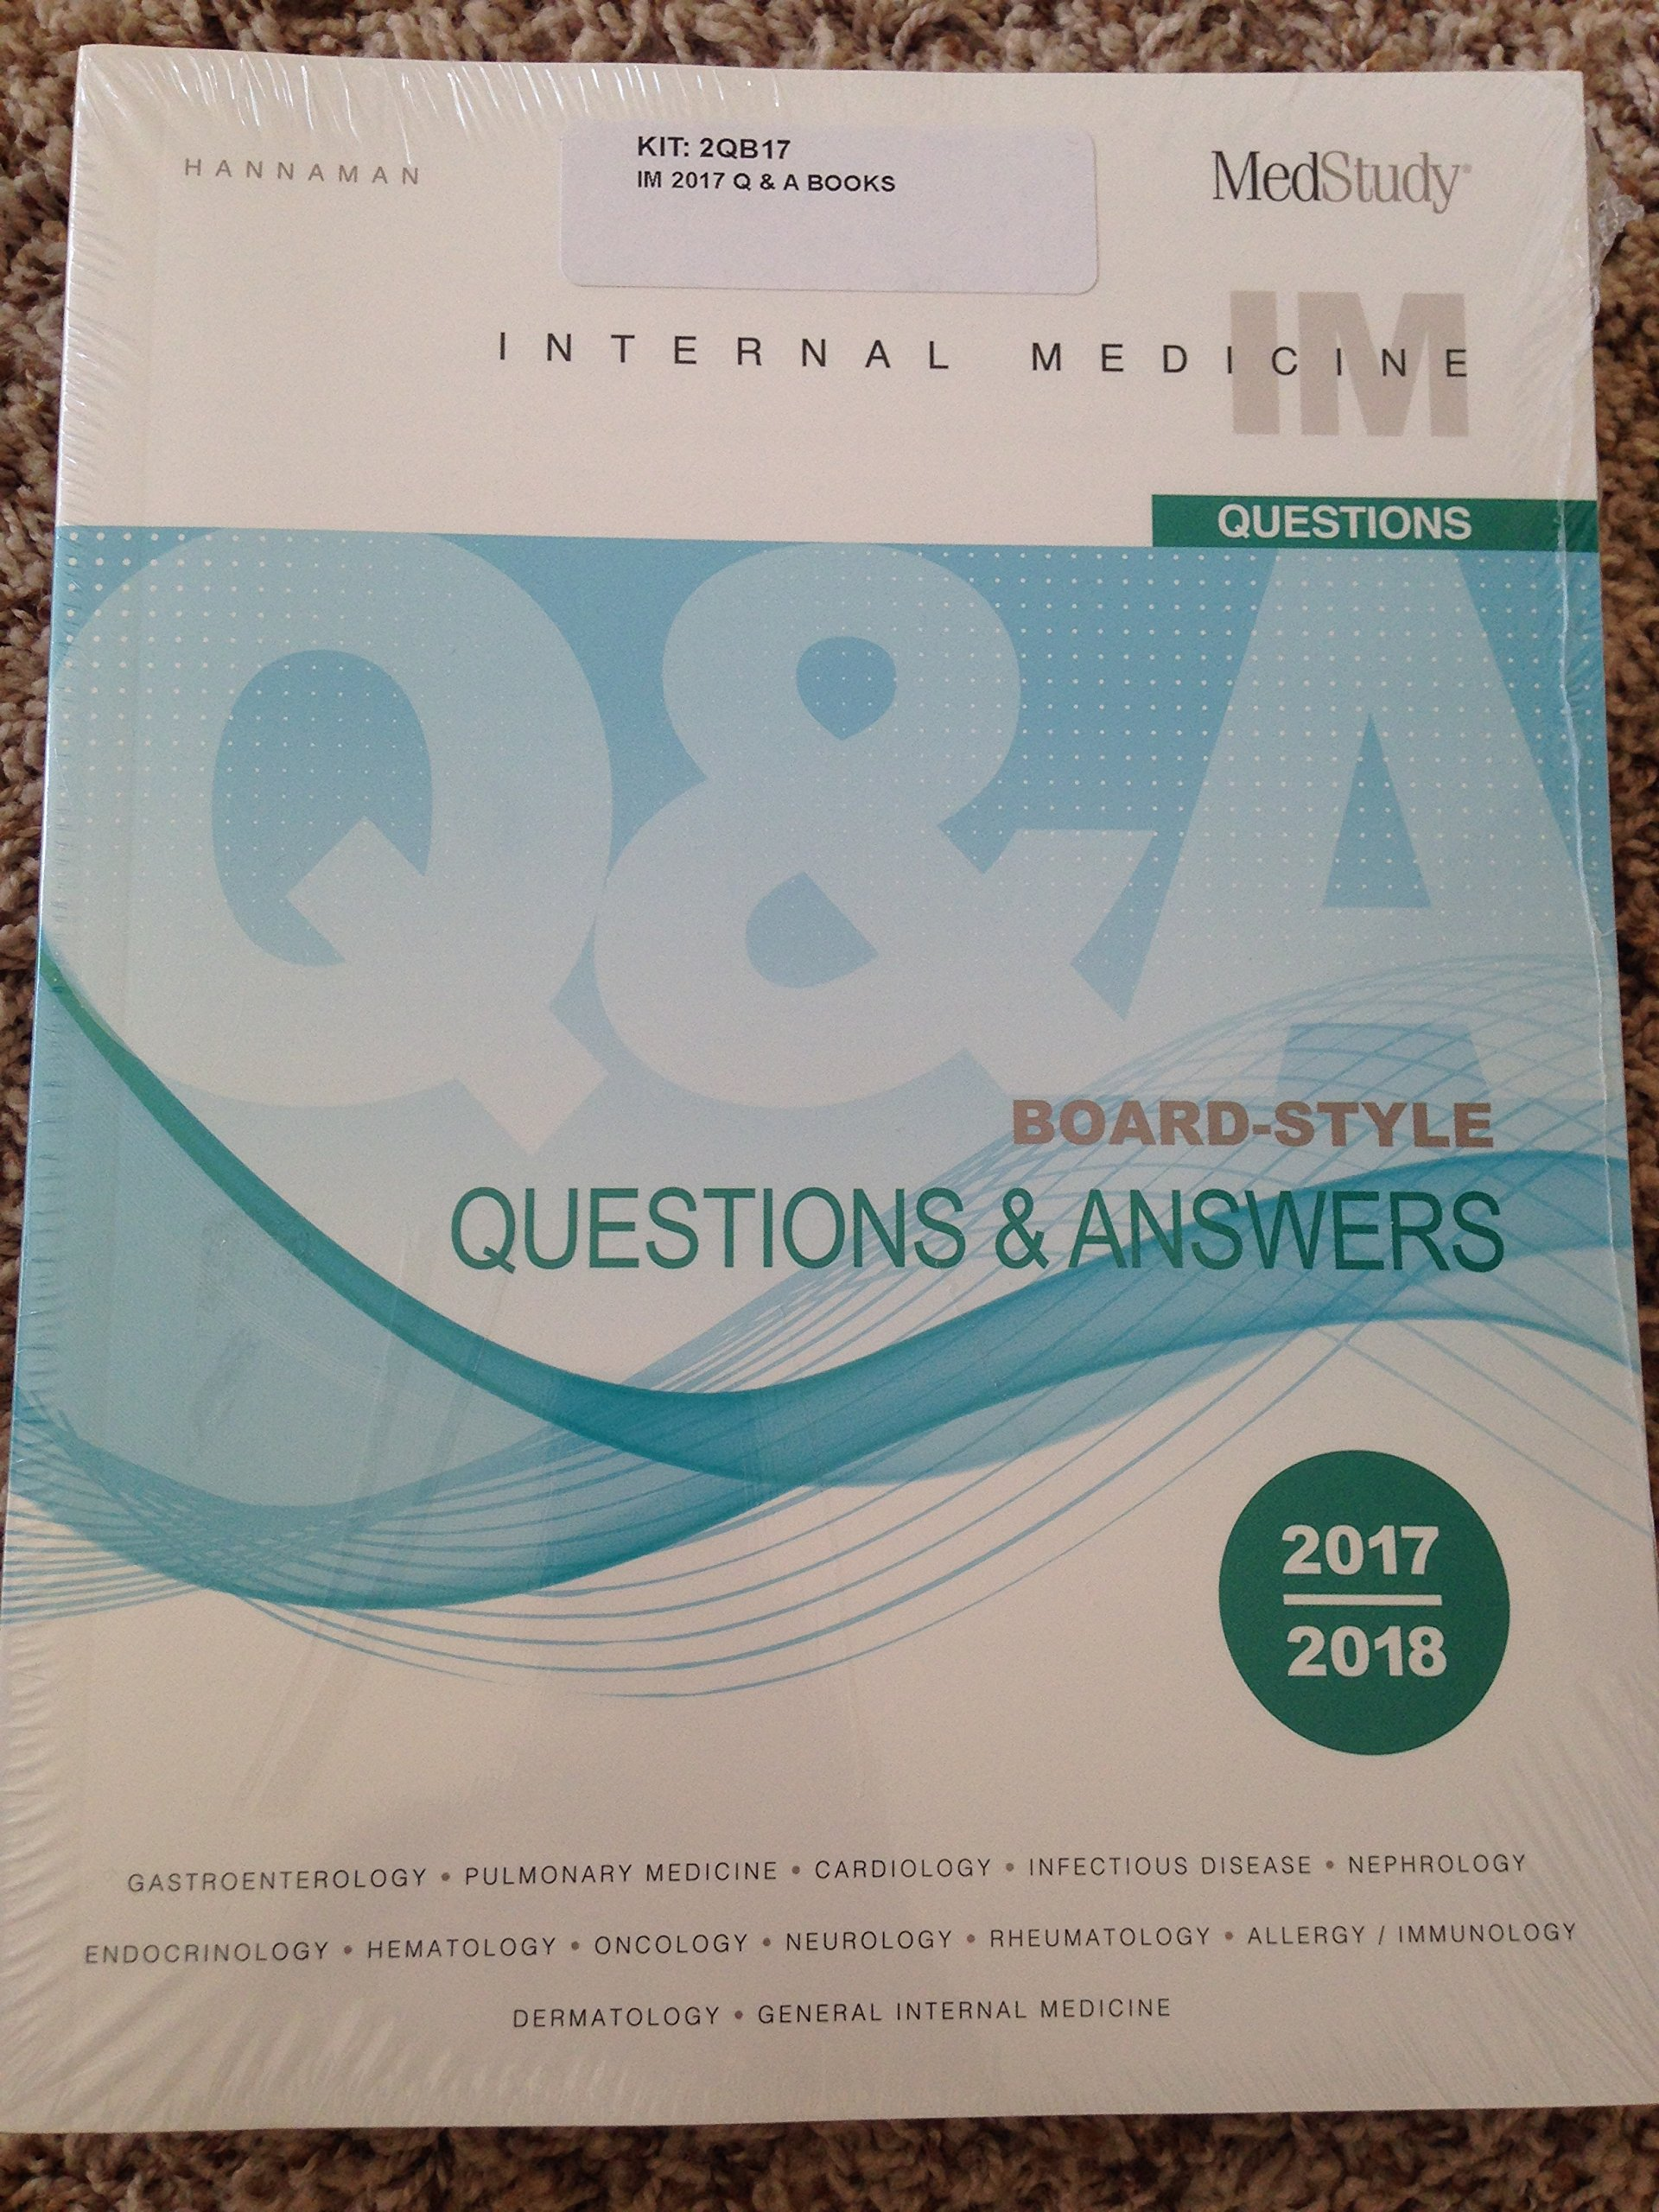 Read Online Medstudy 17th edition 2017-2018 Internal Medicine Board-Style Questions & Answers ebook